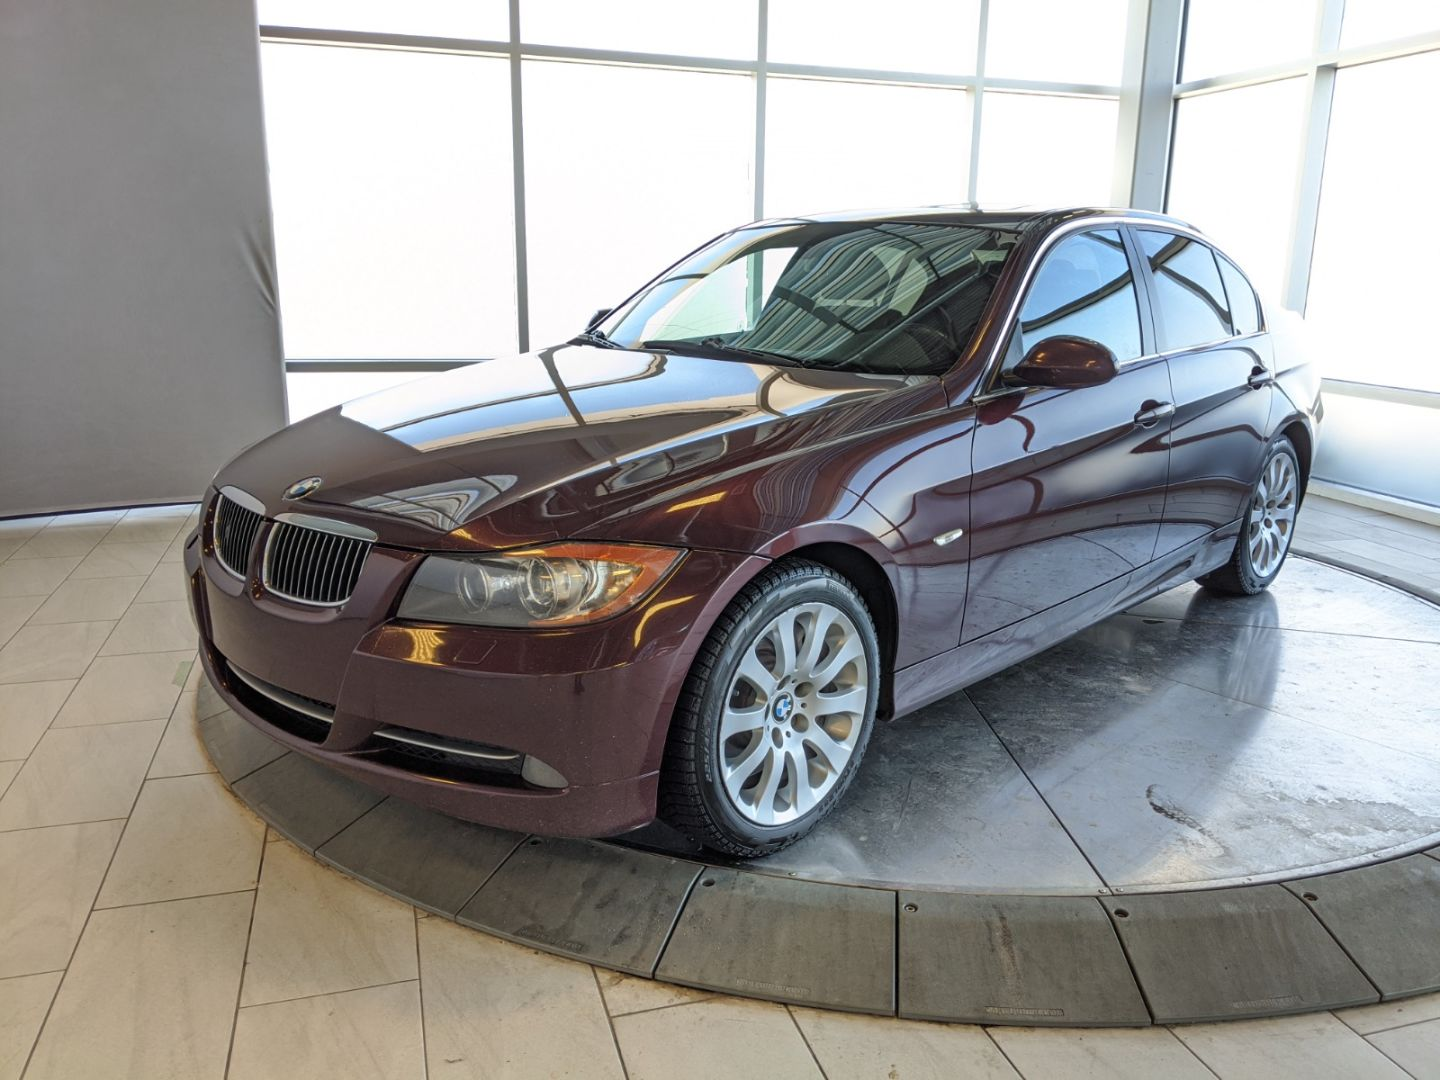 2007 BMW 3 Series 335xi for sale in Edmonton, Alberta